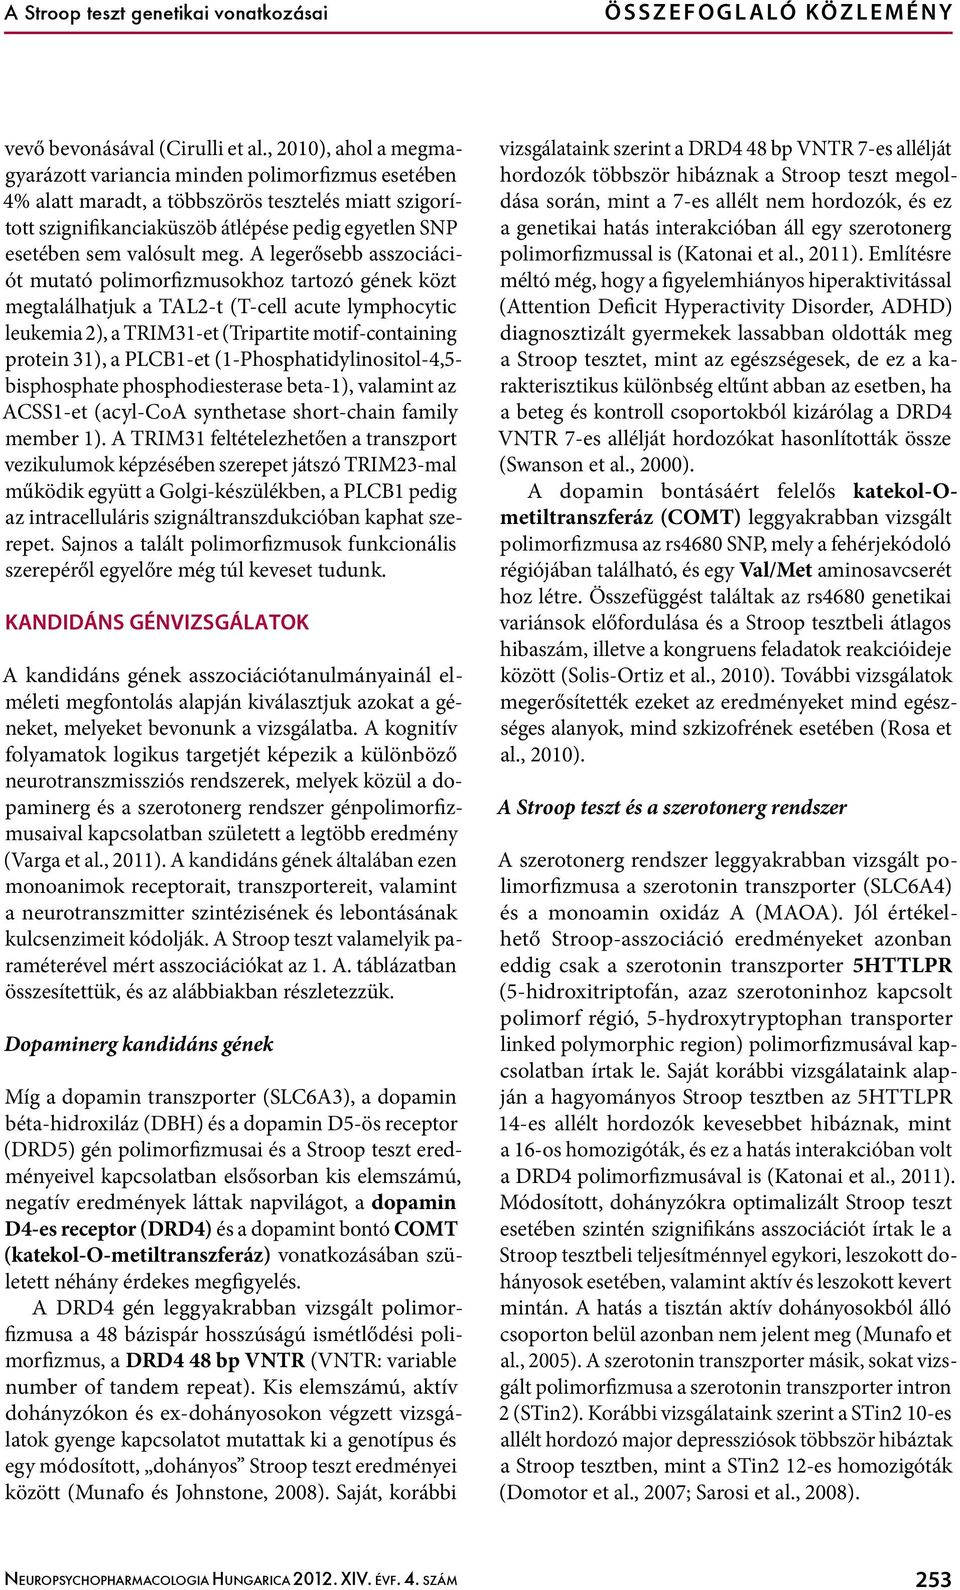 meg. A legerősebb asszociációt mutató polimorfizmusokhoz tartozó gének közt megtalálhatjuk a TAL2-t (T-cell acute lymphocytic leukemia 2), a TRIM31-et (Tripartite motif-containing protein 31), a